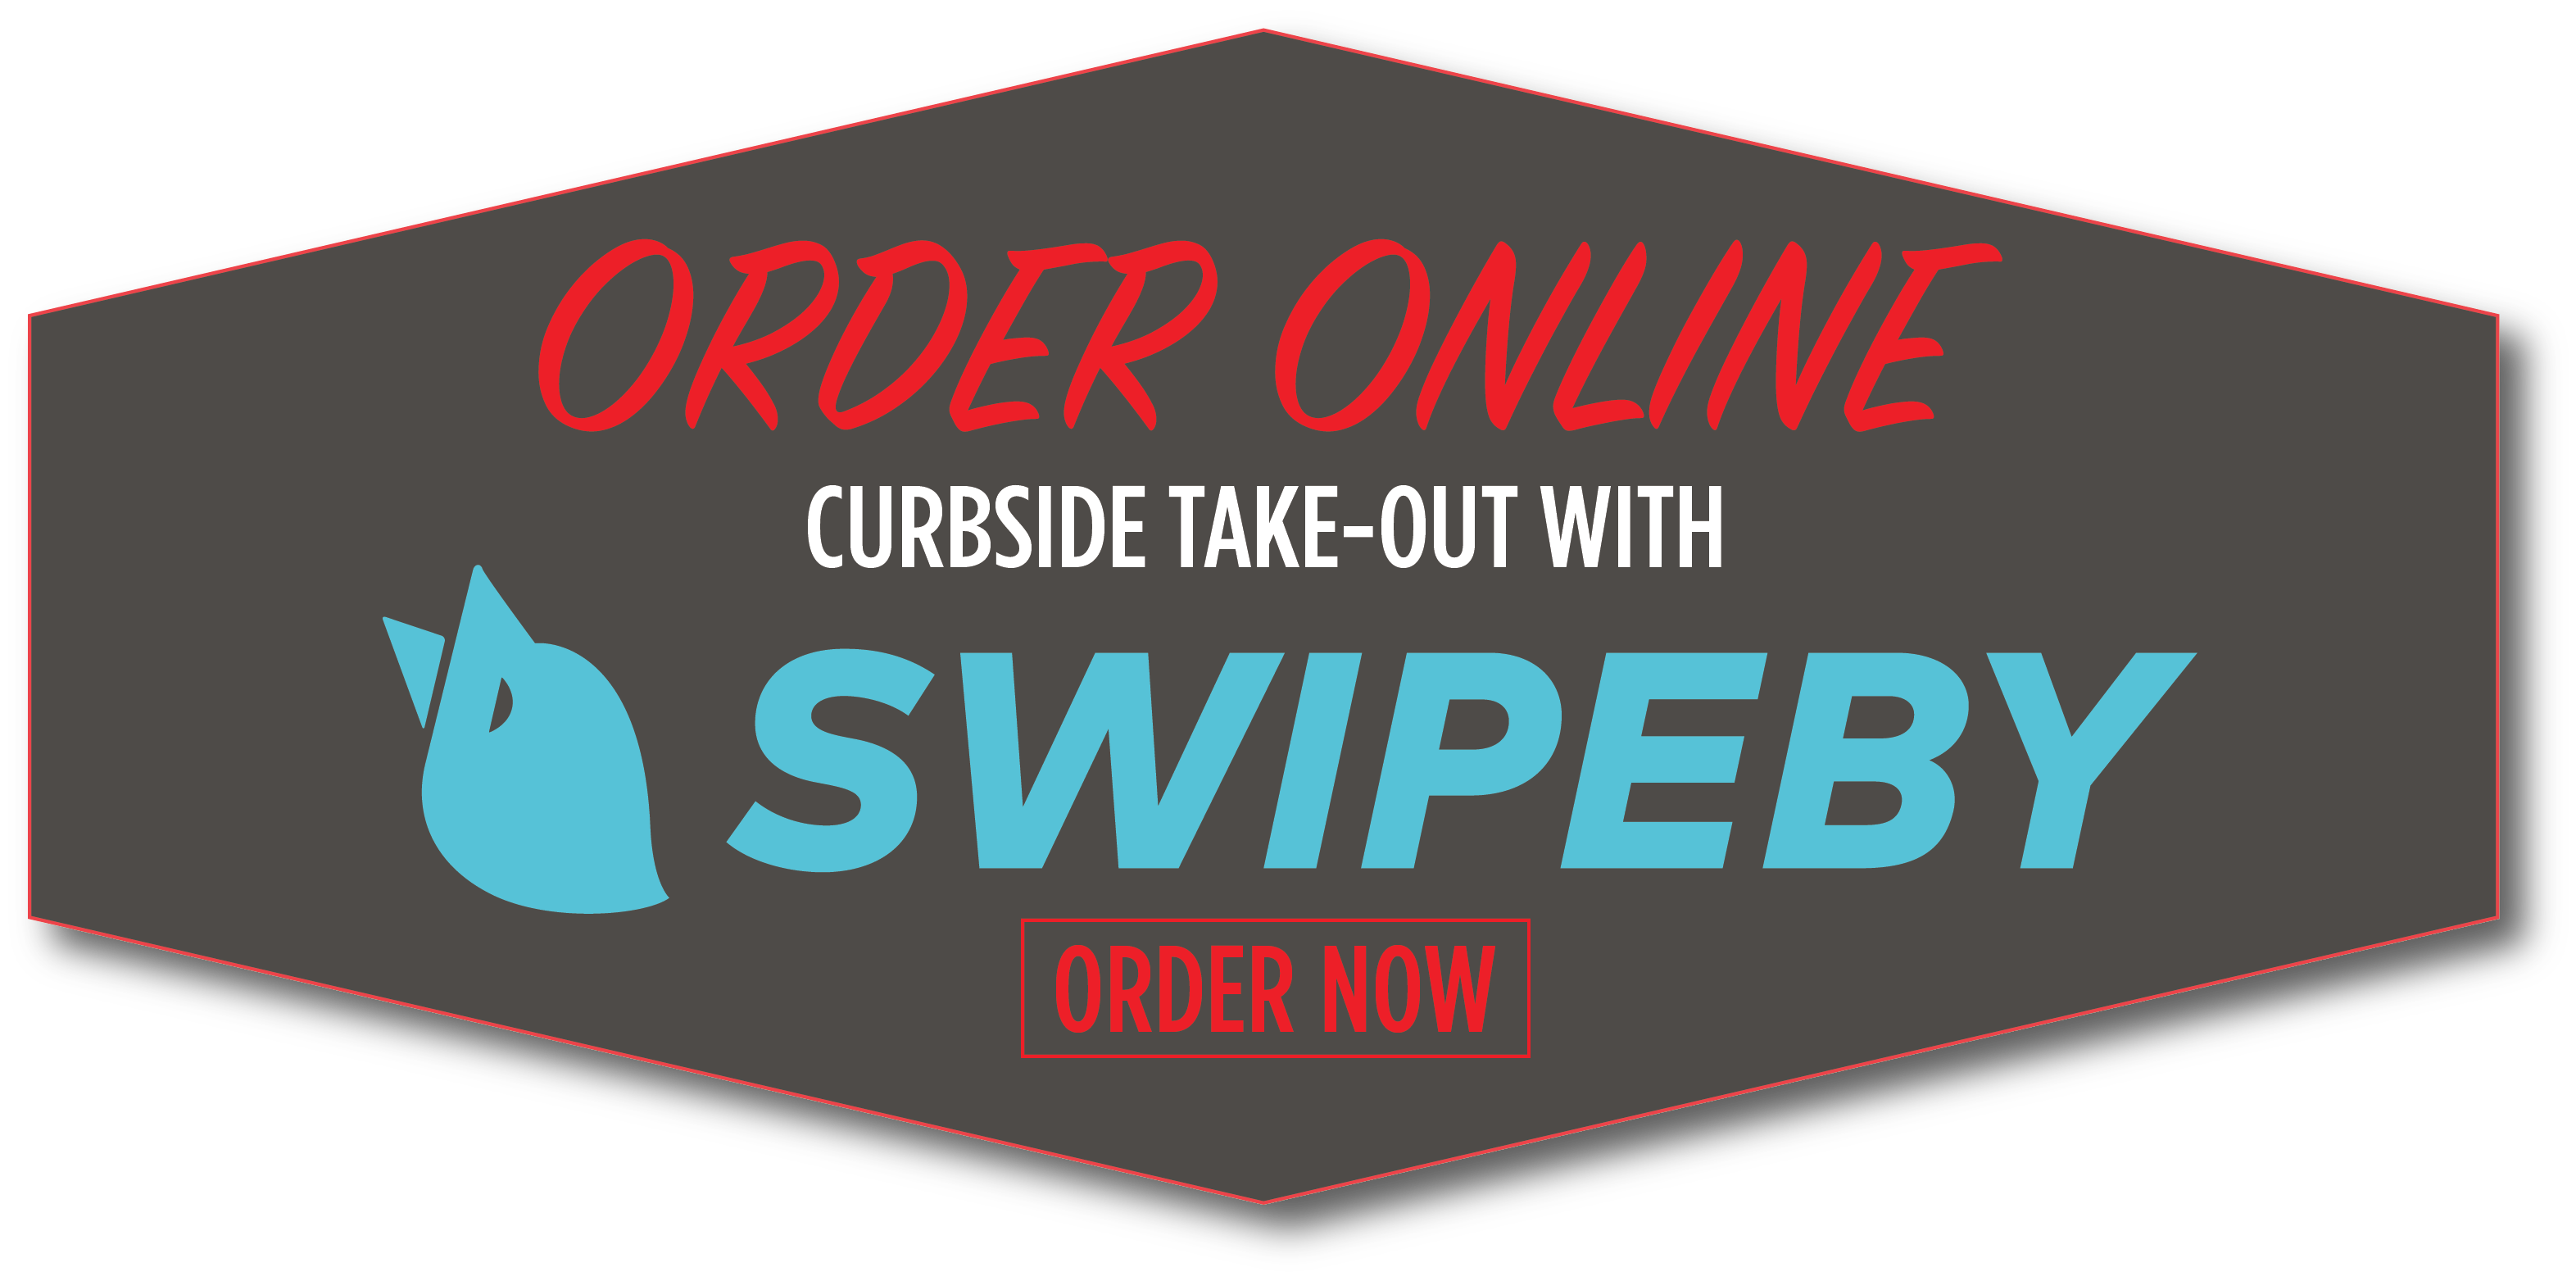 Online Order with SWIPEBY